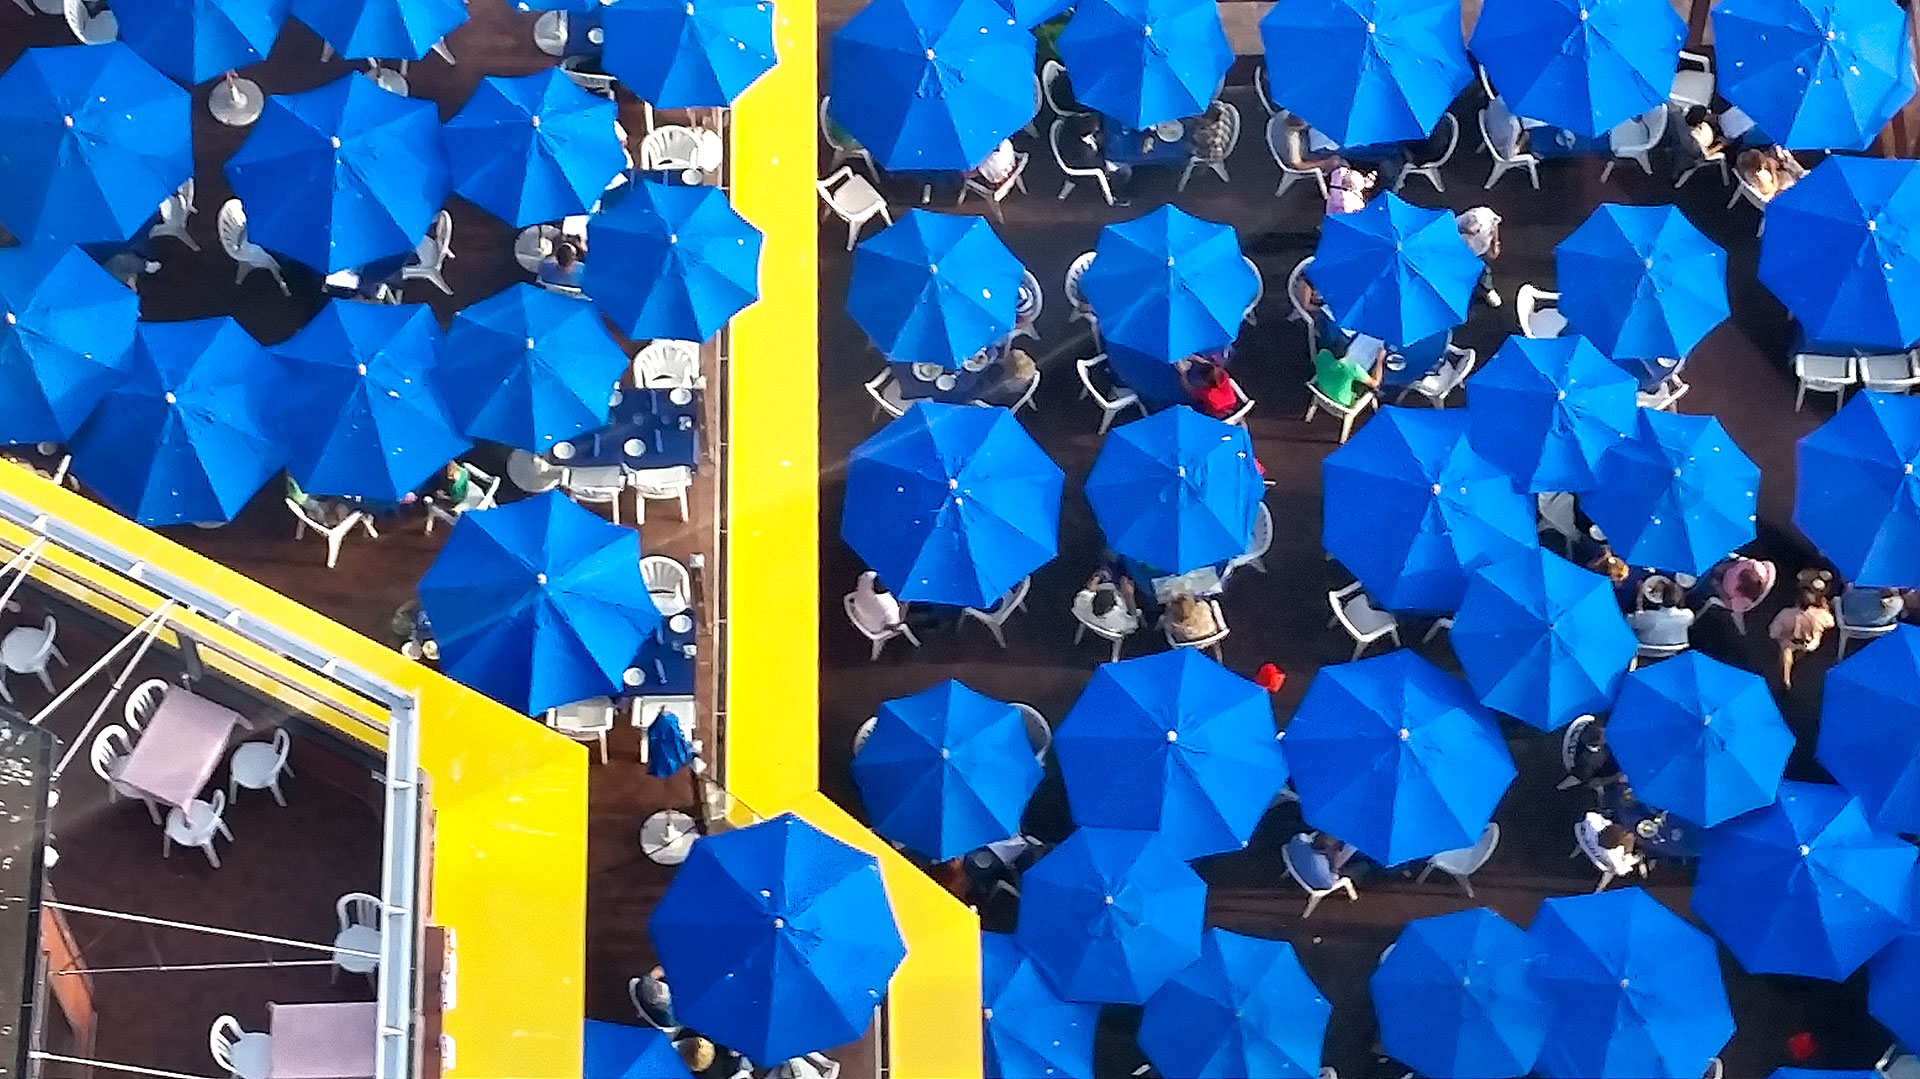 Blue Umbrellas in Seattle